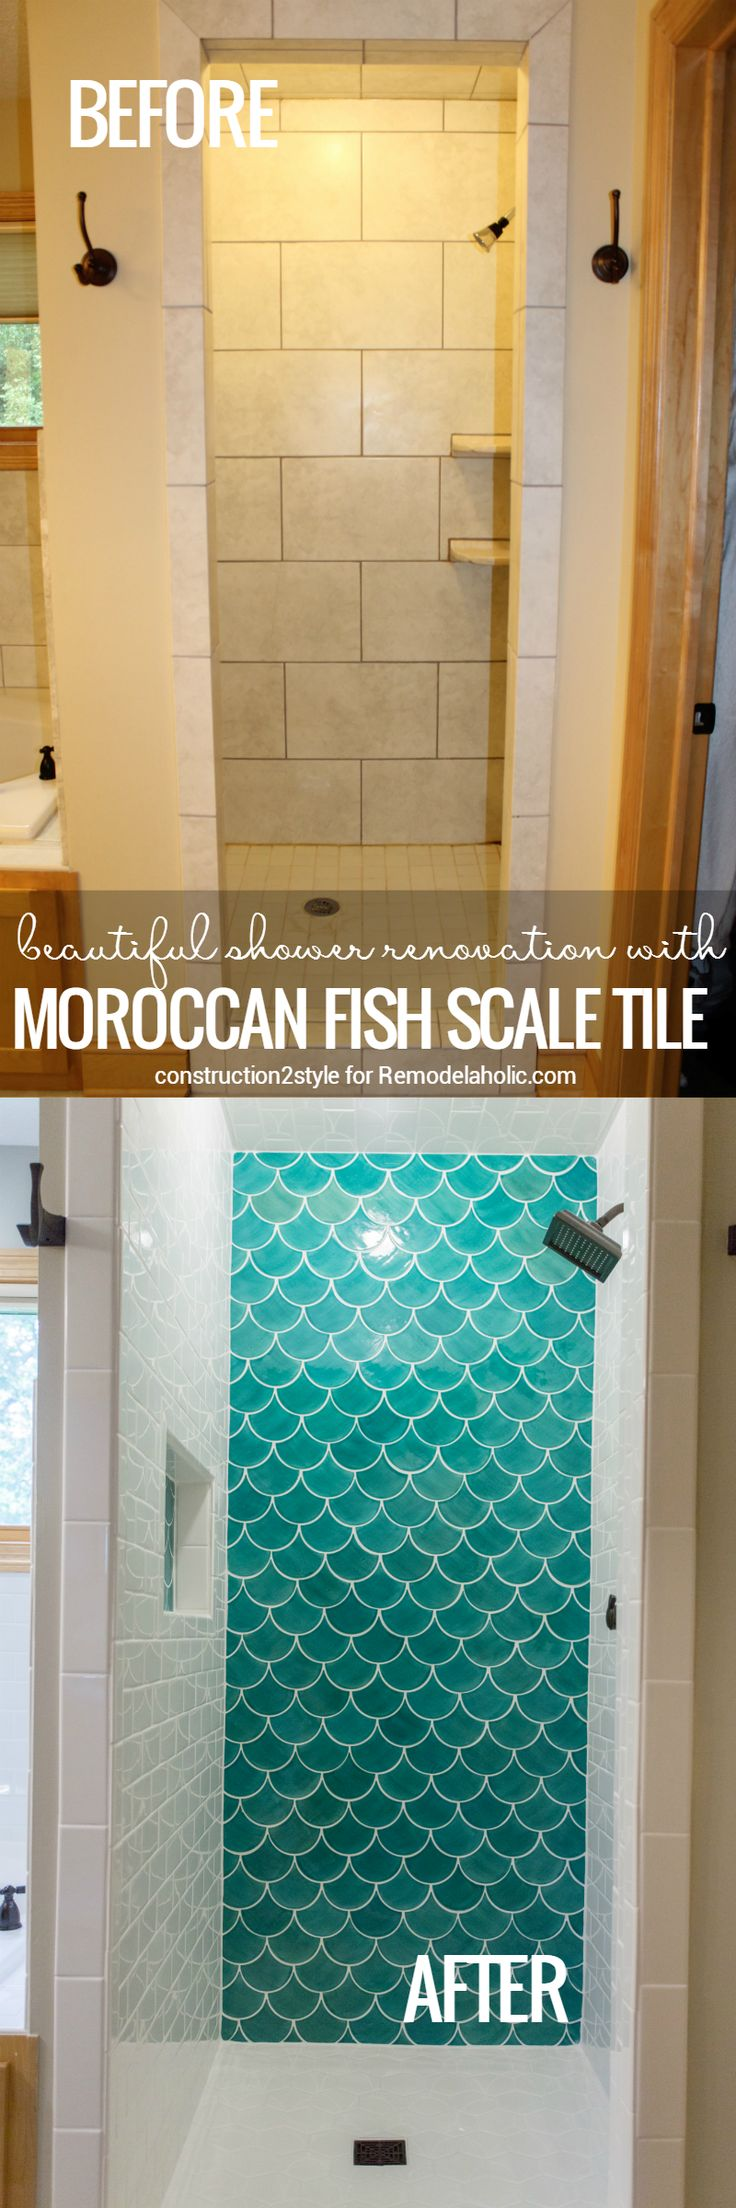 Moroccan Fish Scale Tile Shower Renovation /Remodelaholic ...